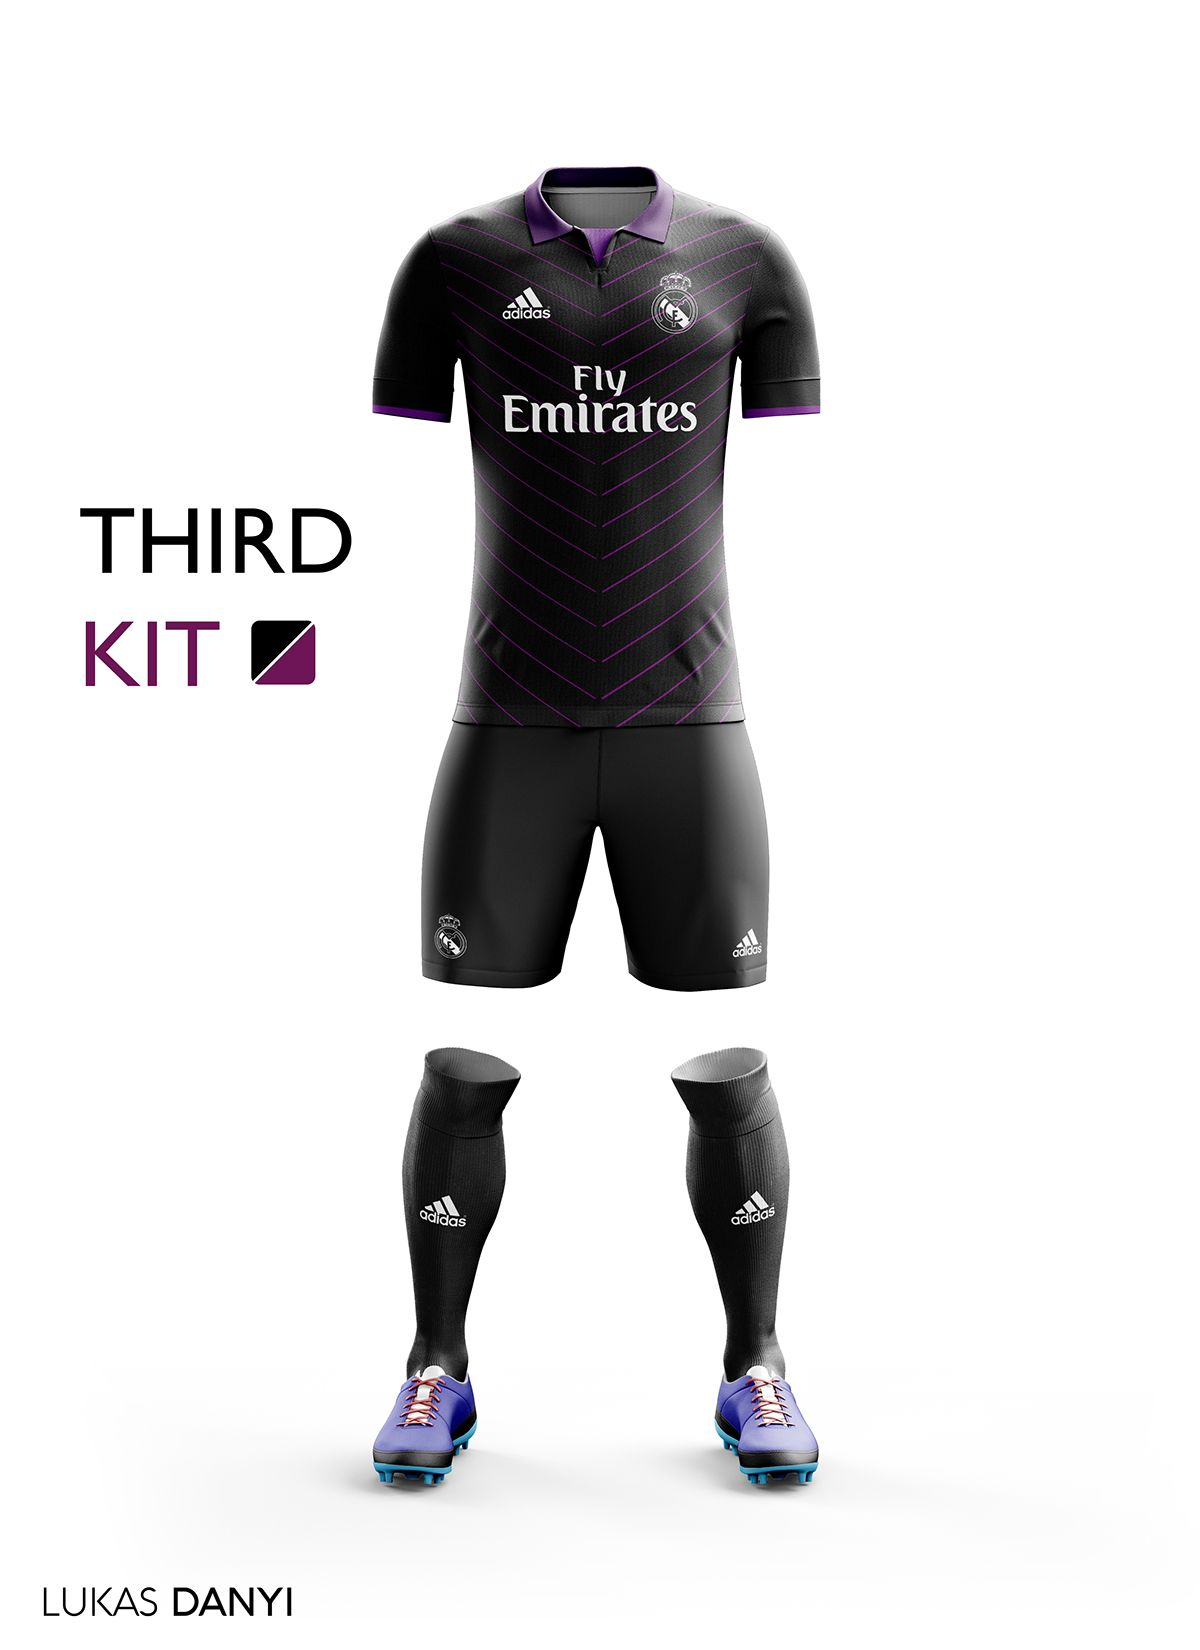 c4fd5621c I designed football kits for Real Madrid CF for the upcoming season 16 17.